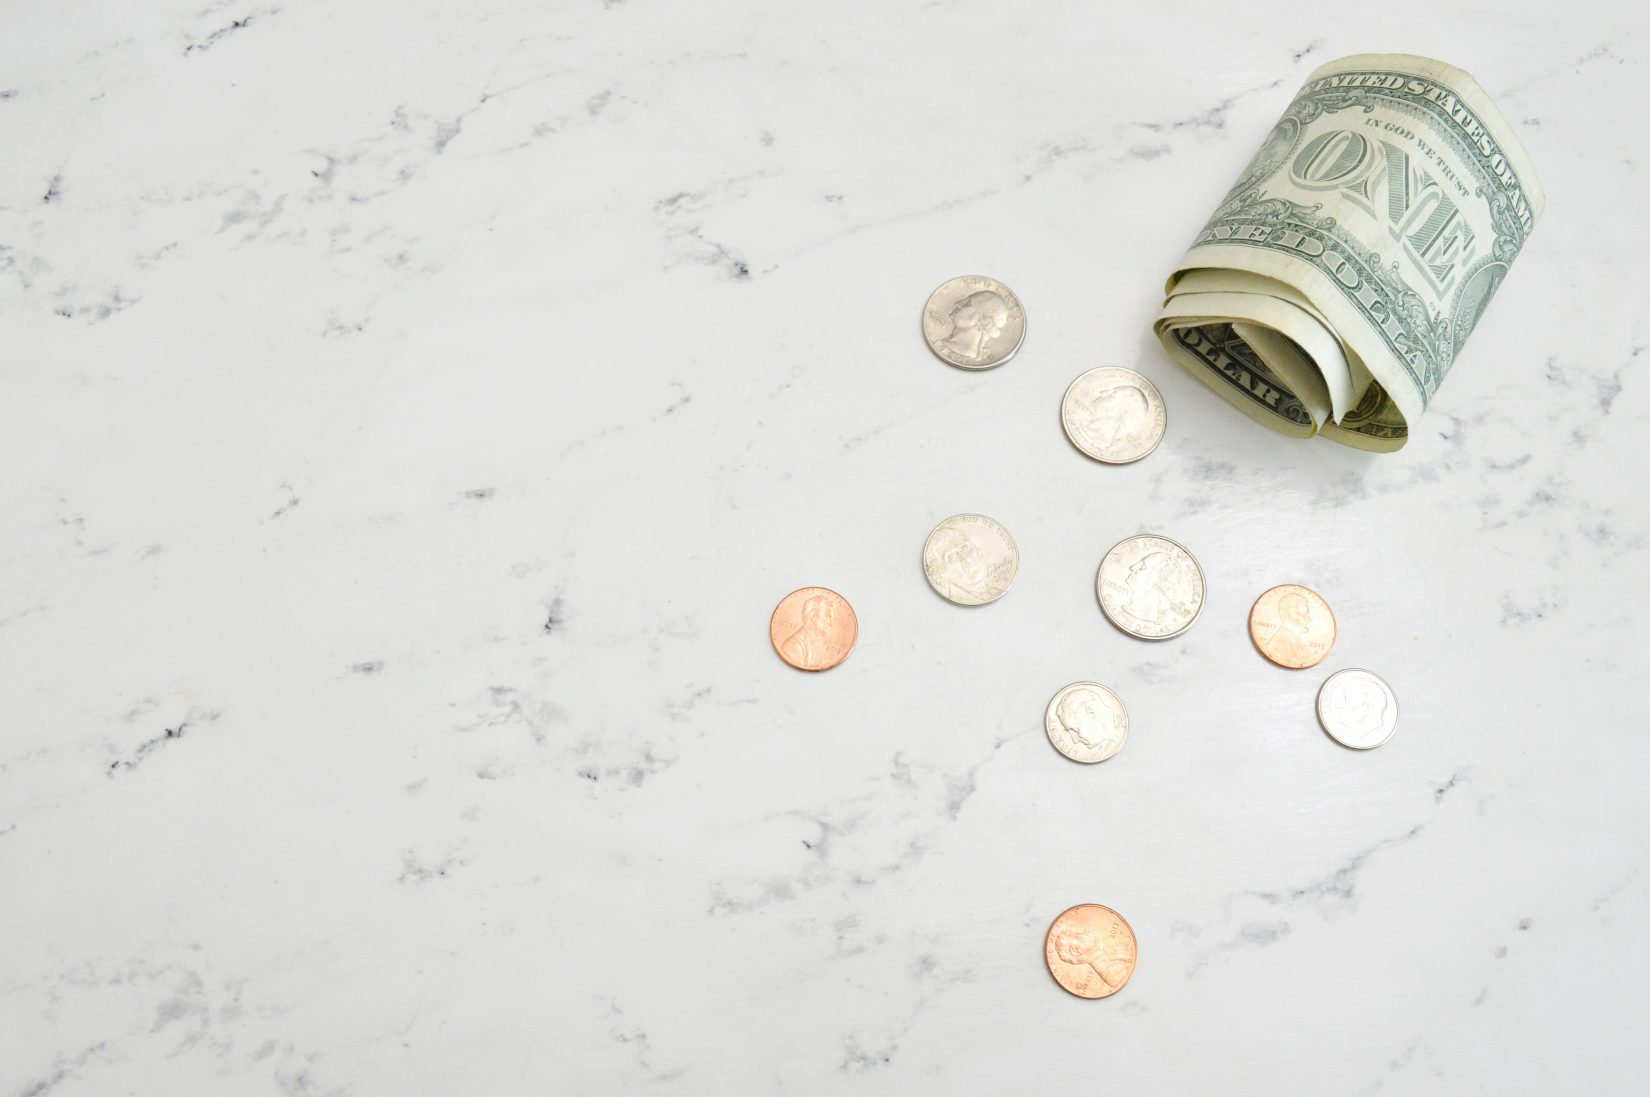 cash and coins on a countertop